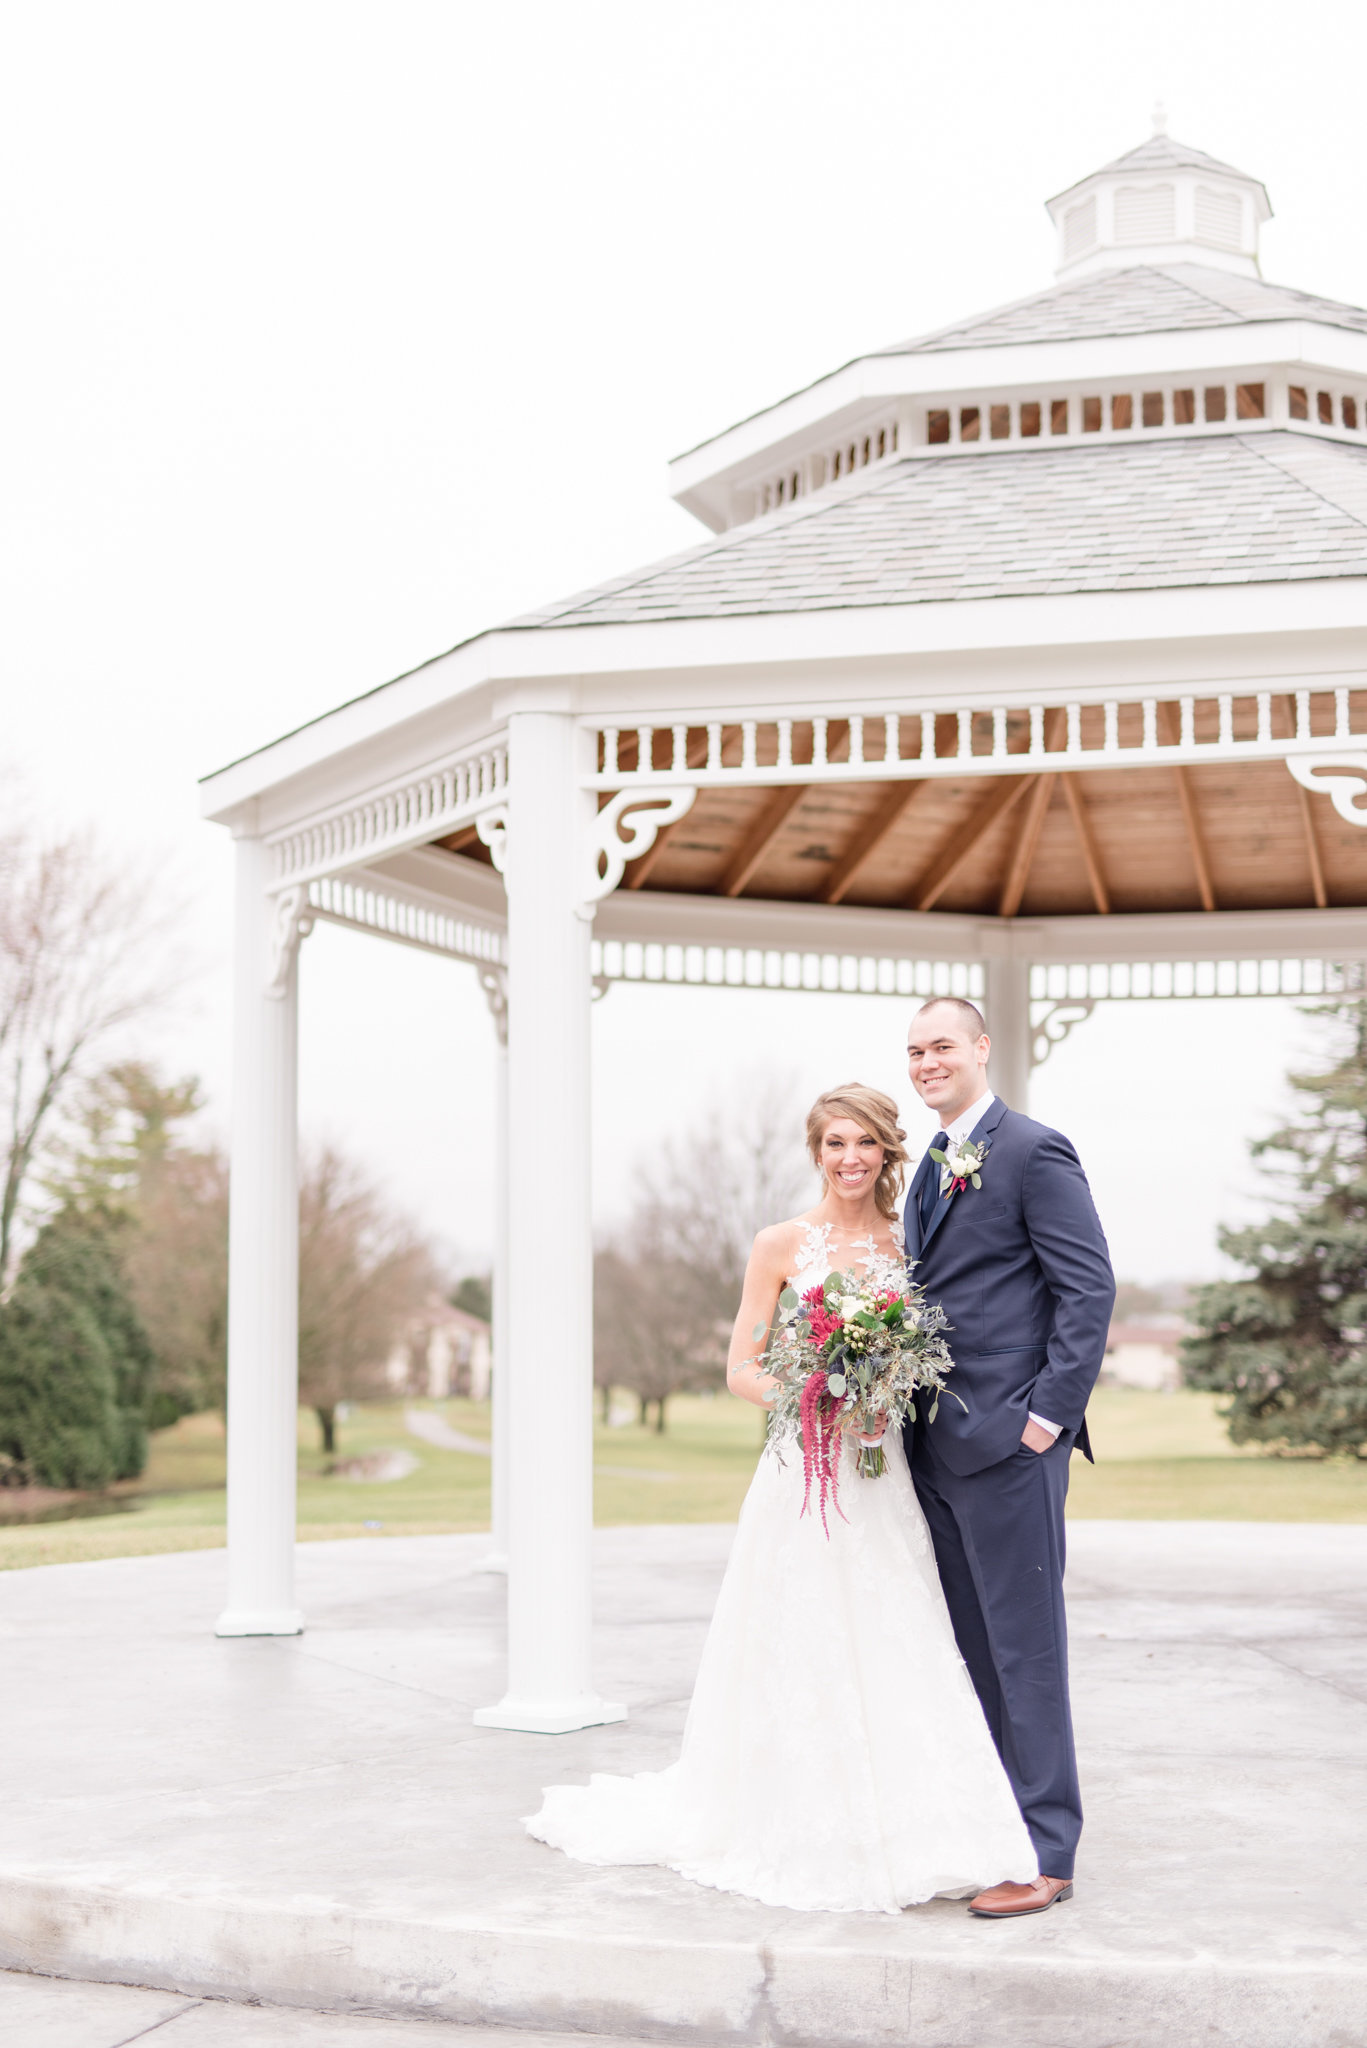 Bride and Groom smile at camera under gazebo.